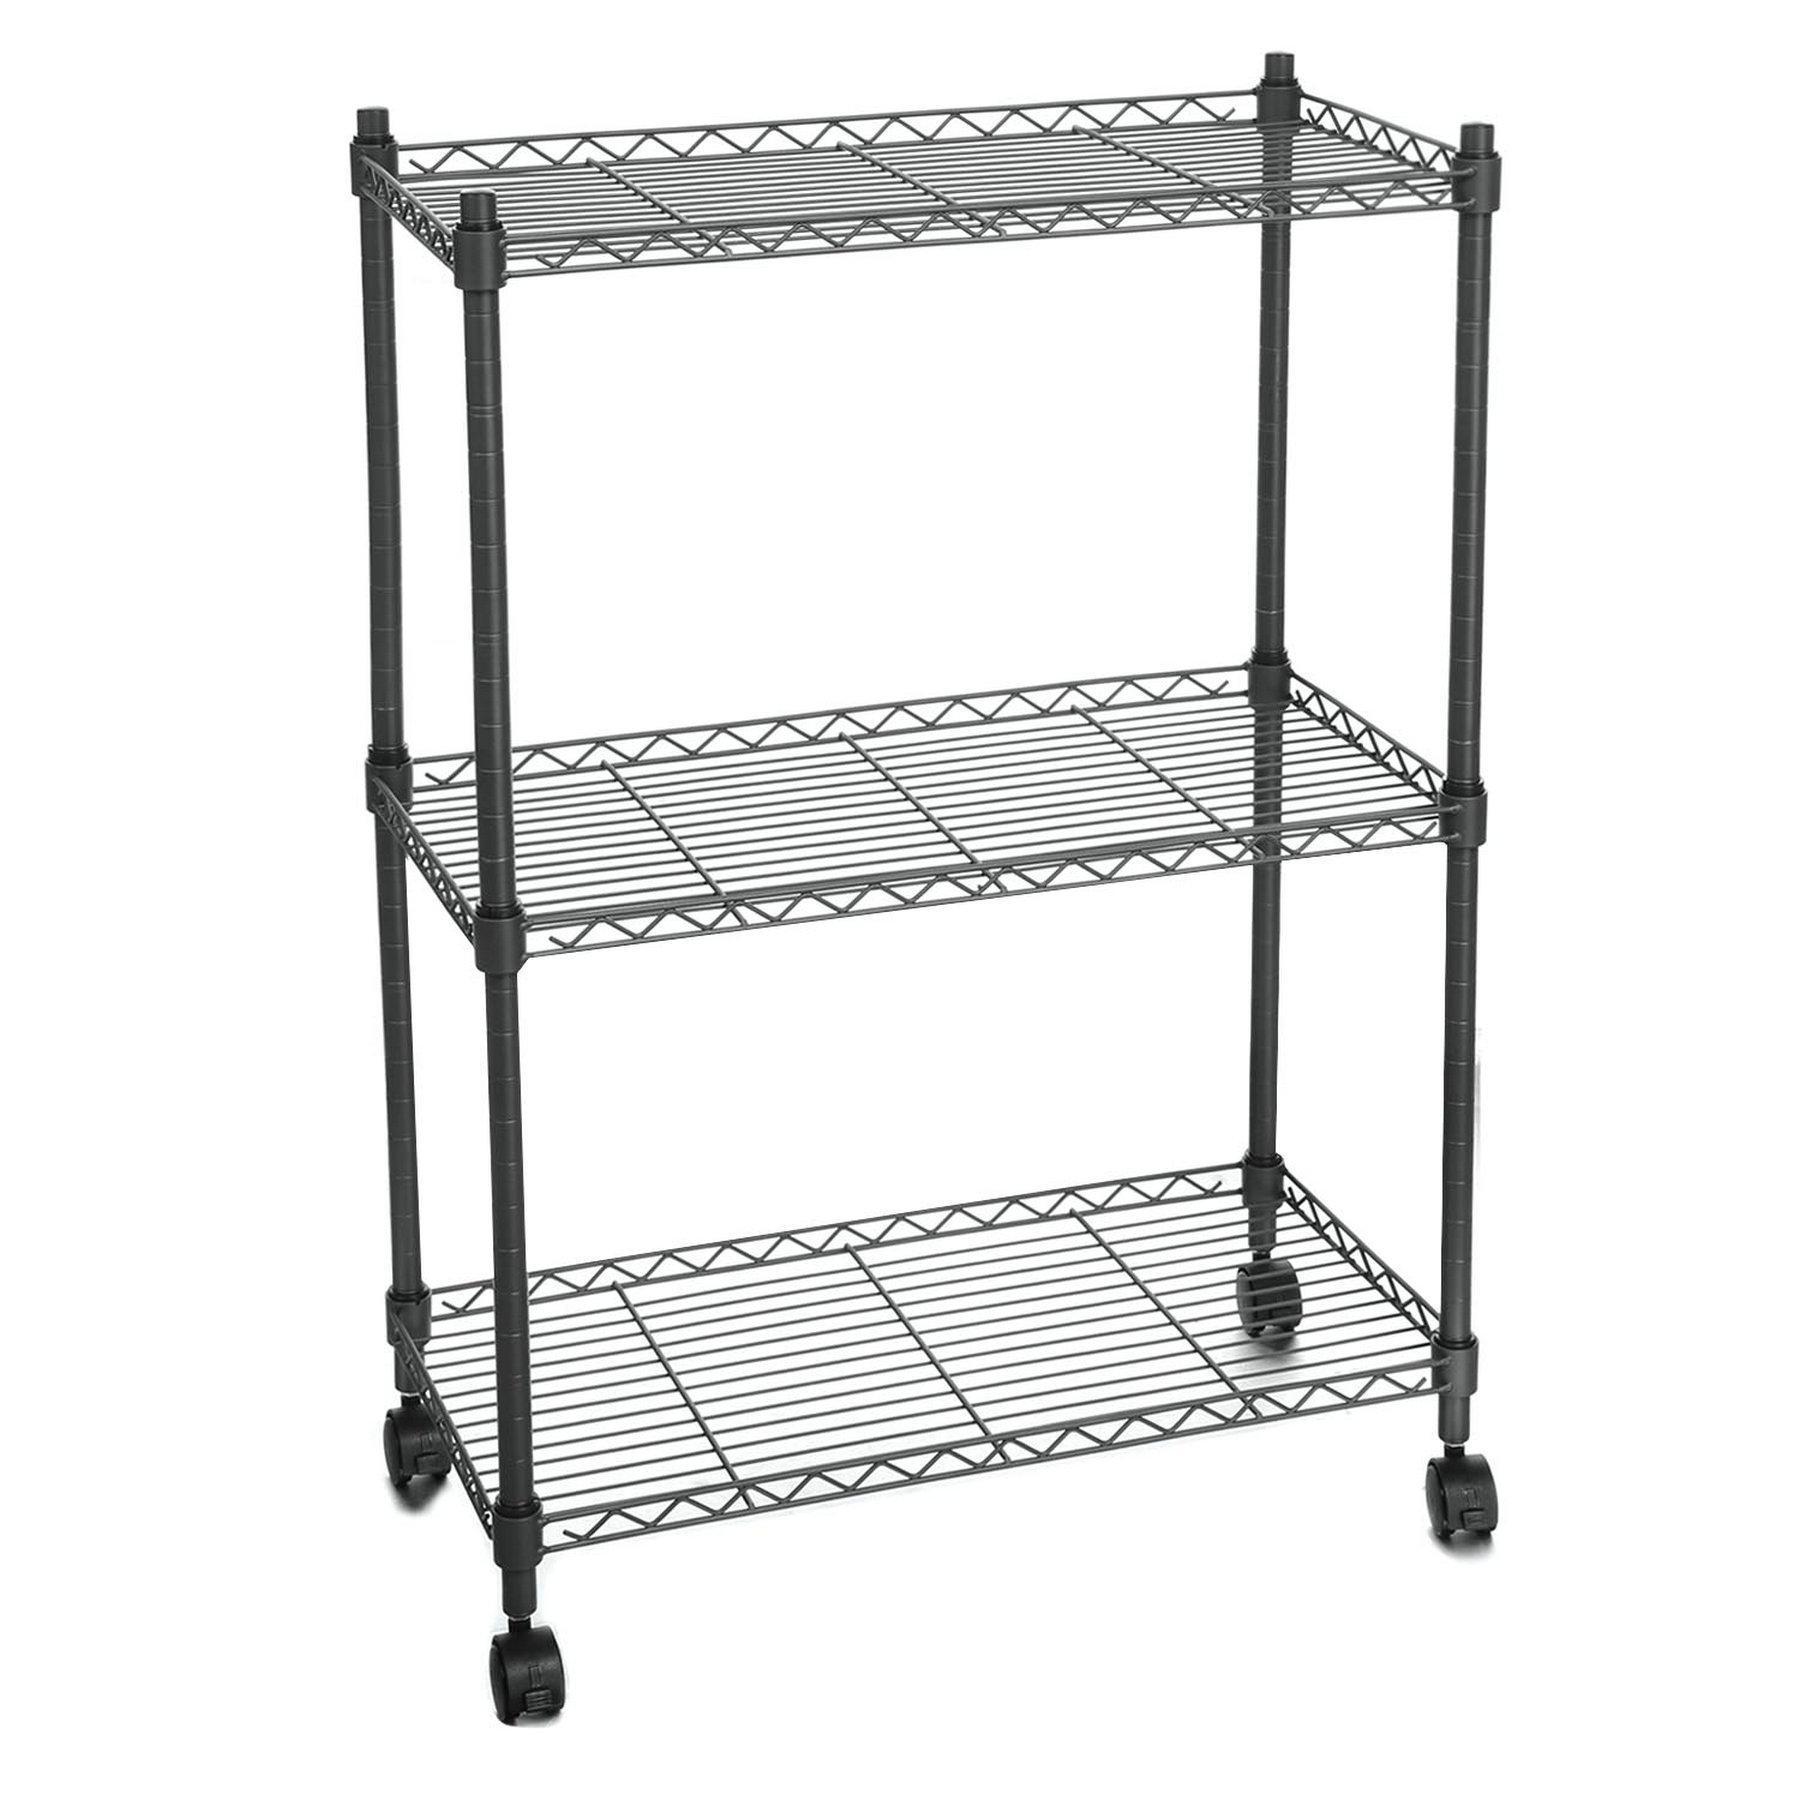 3 Tier Metal Kitchen Rack Heavy Duty Microwave Oven Stand Storage Cart CCGE